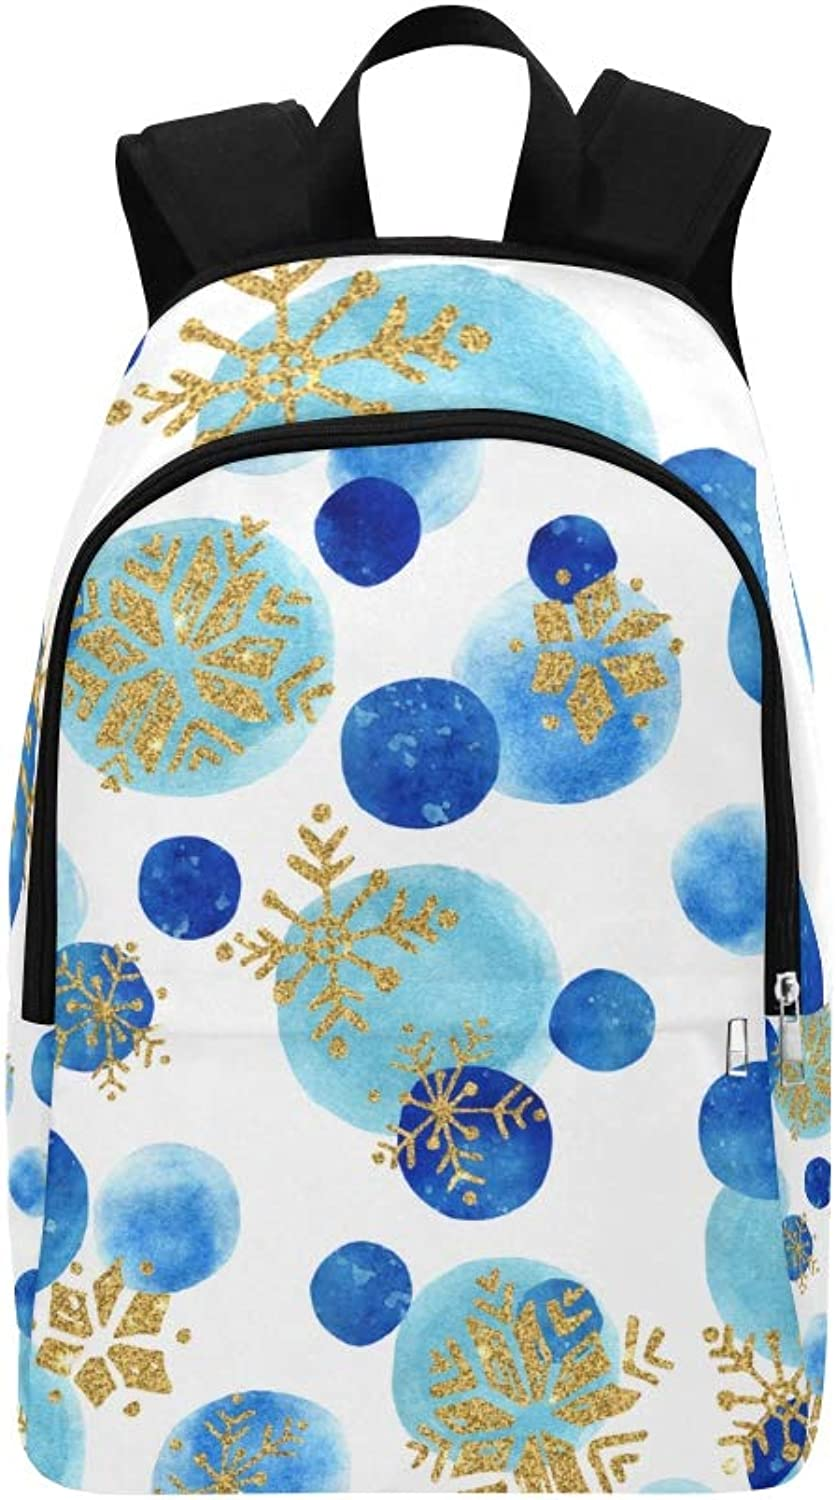 Hand Drawn Stylized Snowflakes in Winter Casual Daypack Travel Bag College School Backpack for Mens and Women